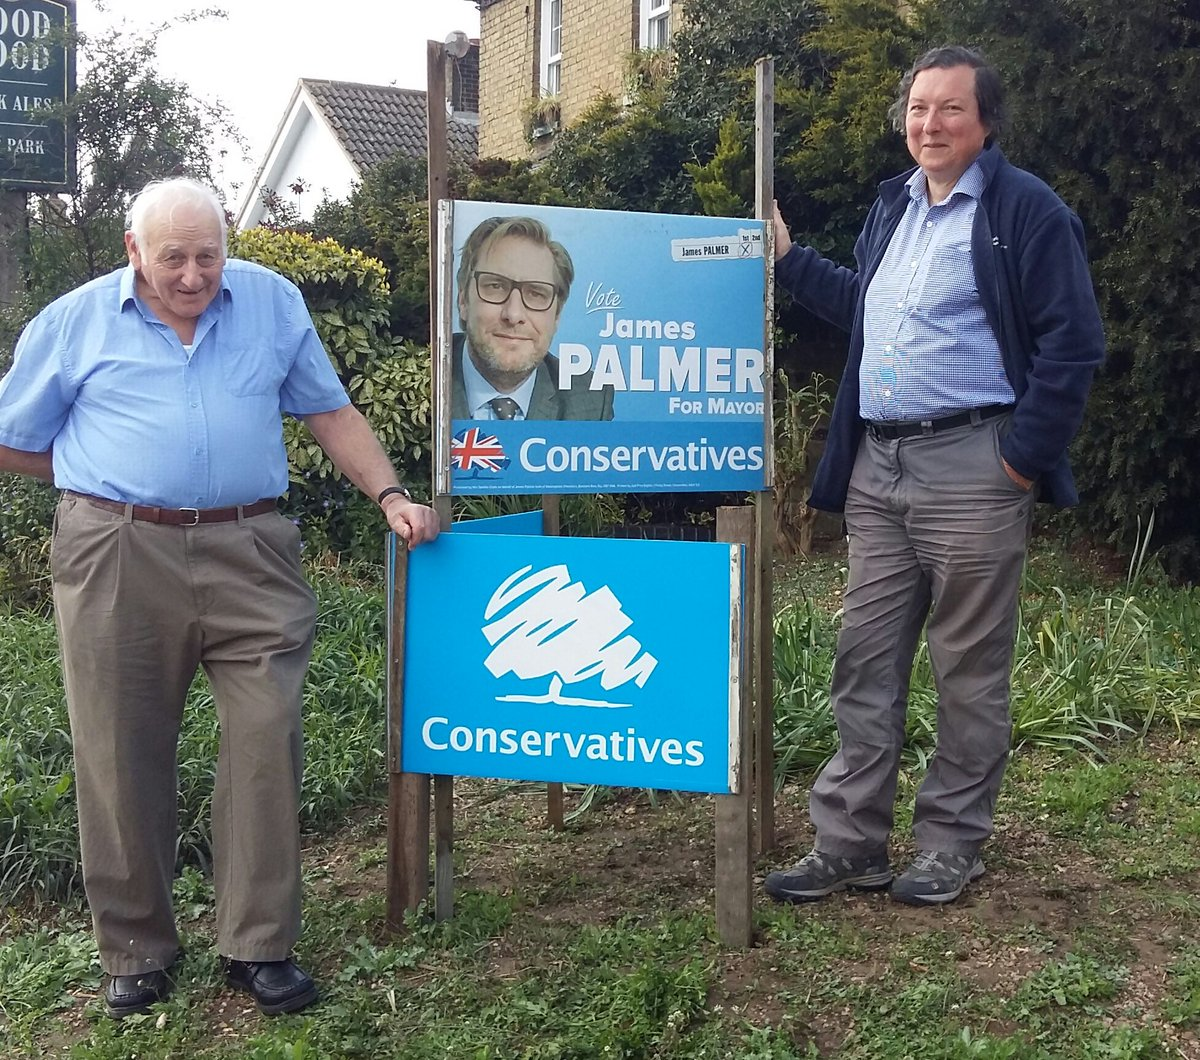 Vote Mike Bradley for @CambsCC &amp; @CllrJamesPalmer #CPMayor #Elections2017 4th May 2017 the choice for a stronger #Sutton &amp; #A10Upgrade<br>http://pic.twitter.com/GEdQoGR44O